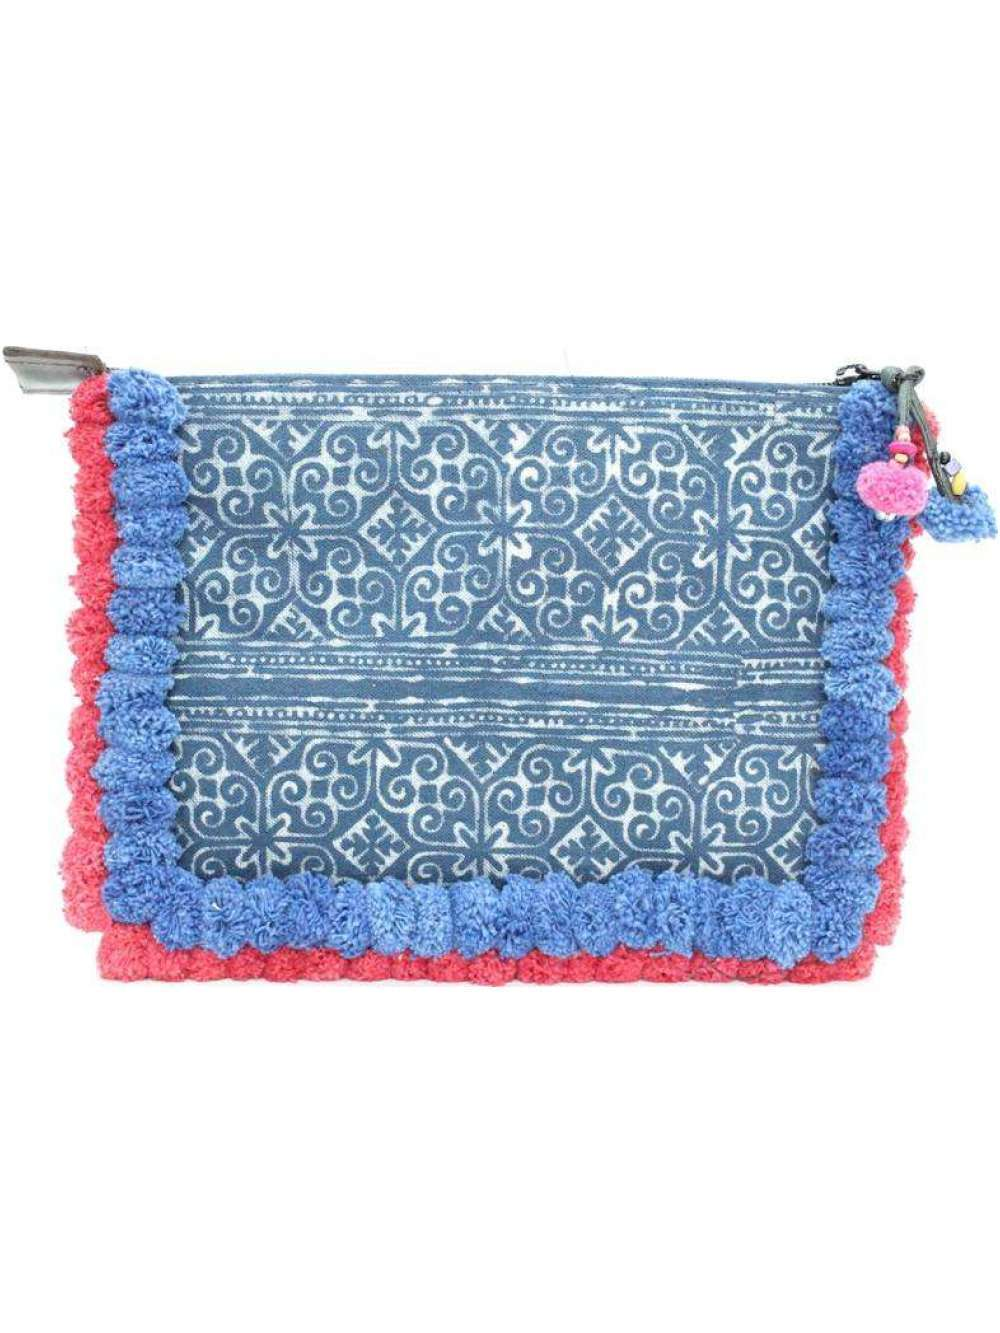 Batik Oversized Clutch with Blue Pom Poms